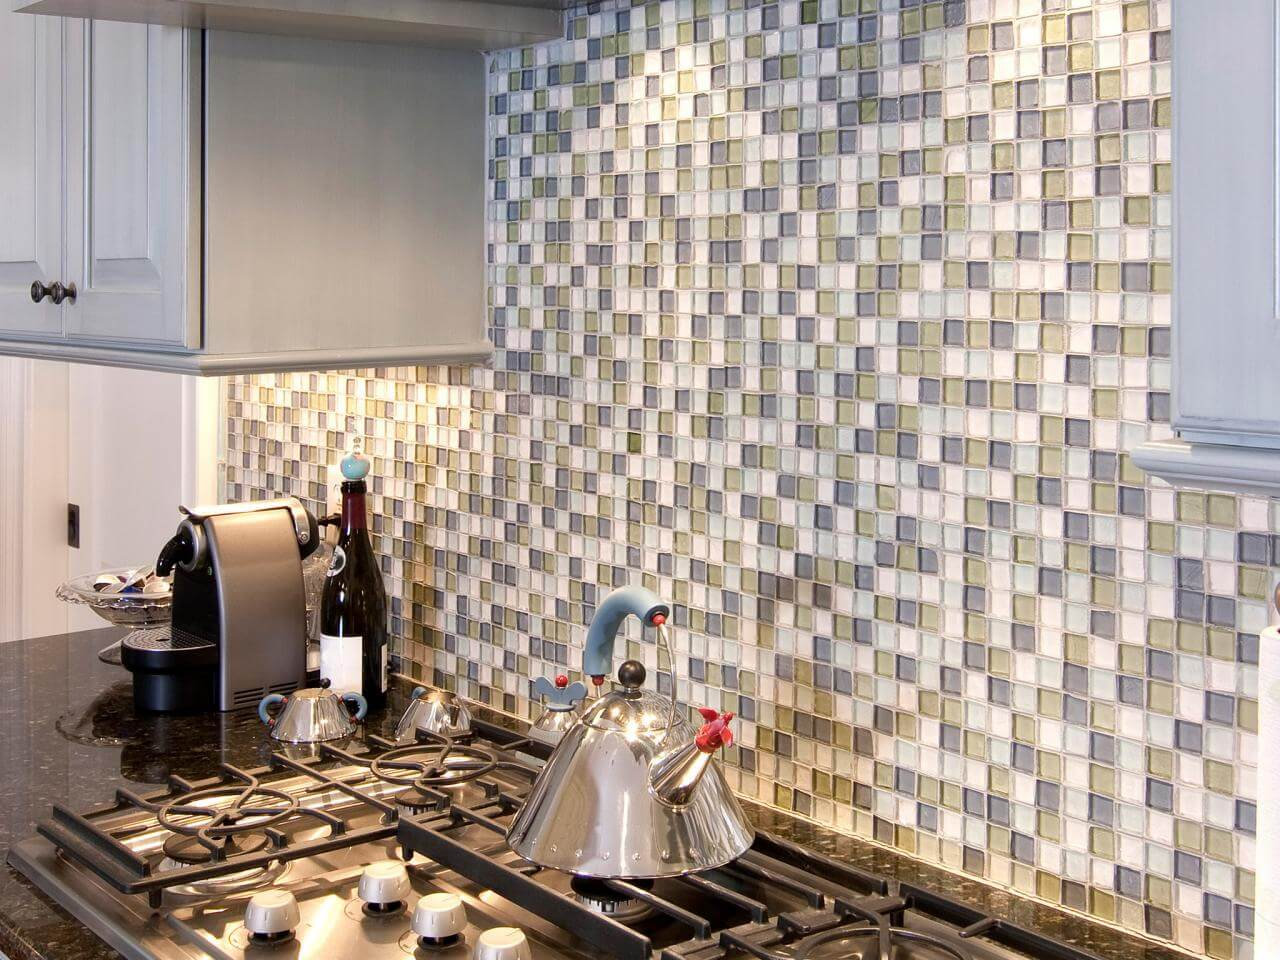 Modern kitchen back wall made of glass tiles